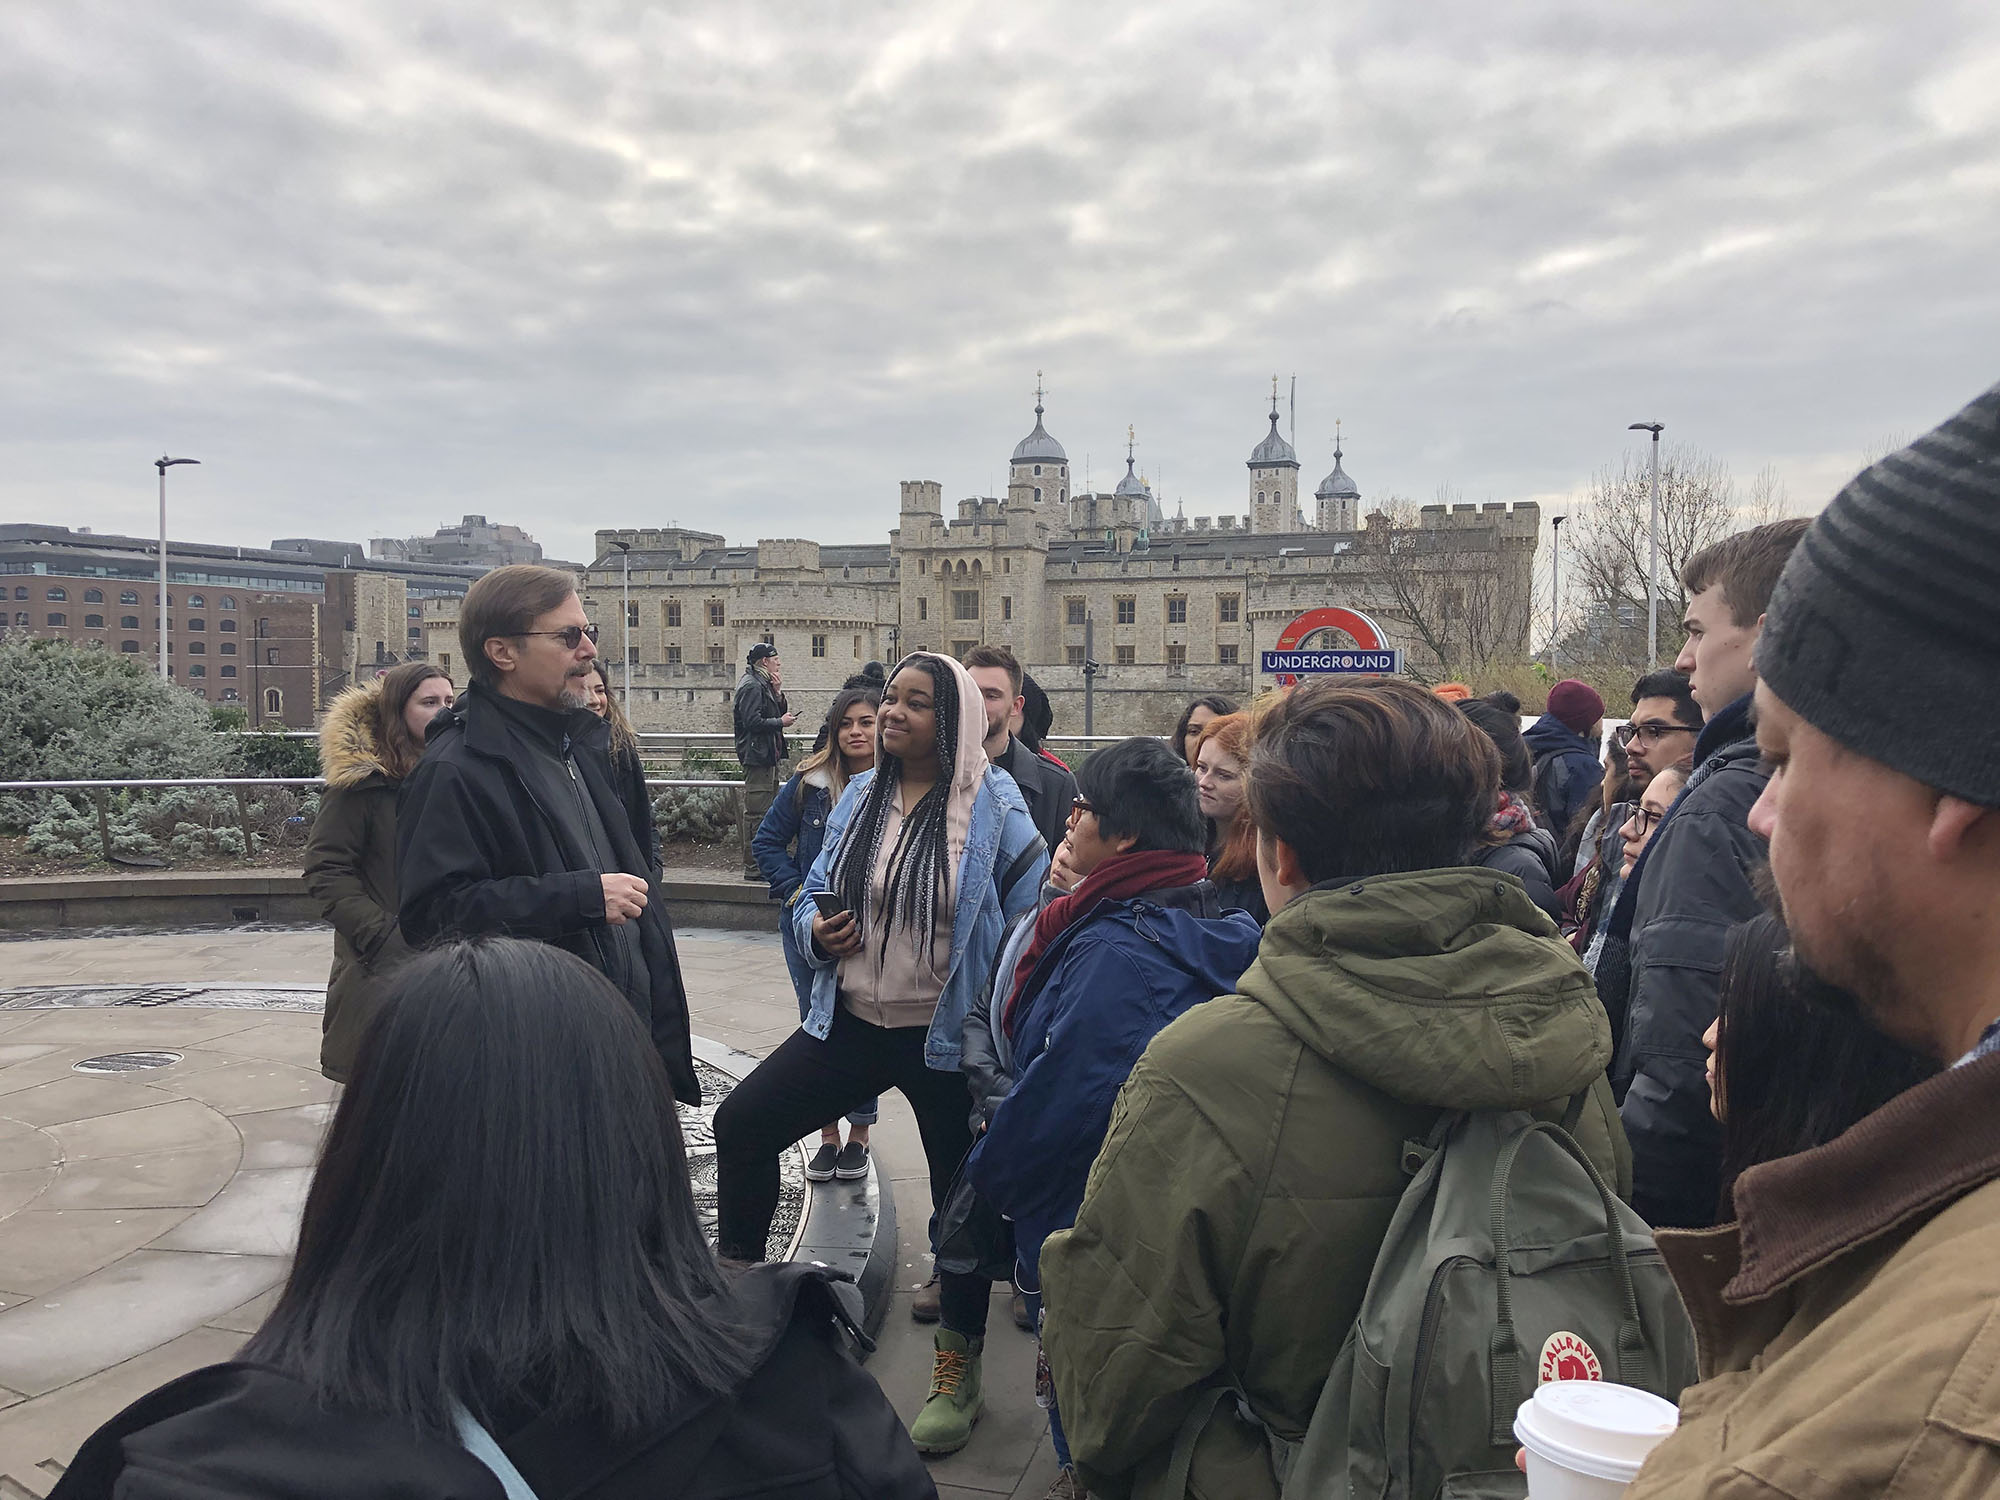 Dr Maldonado speaks to the class about our trip to the Tower of London